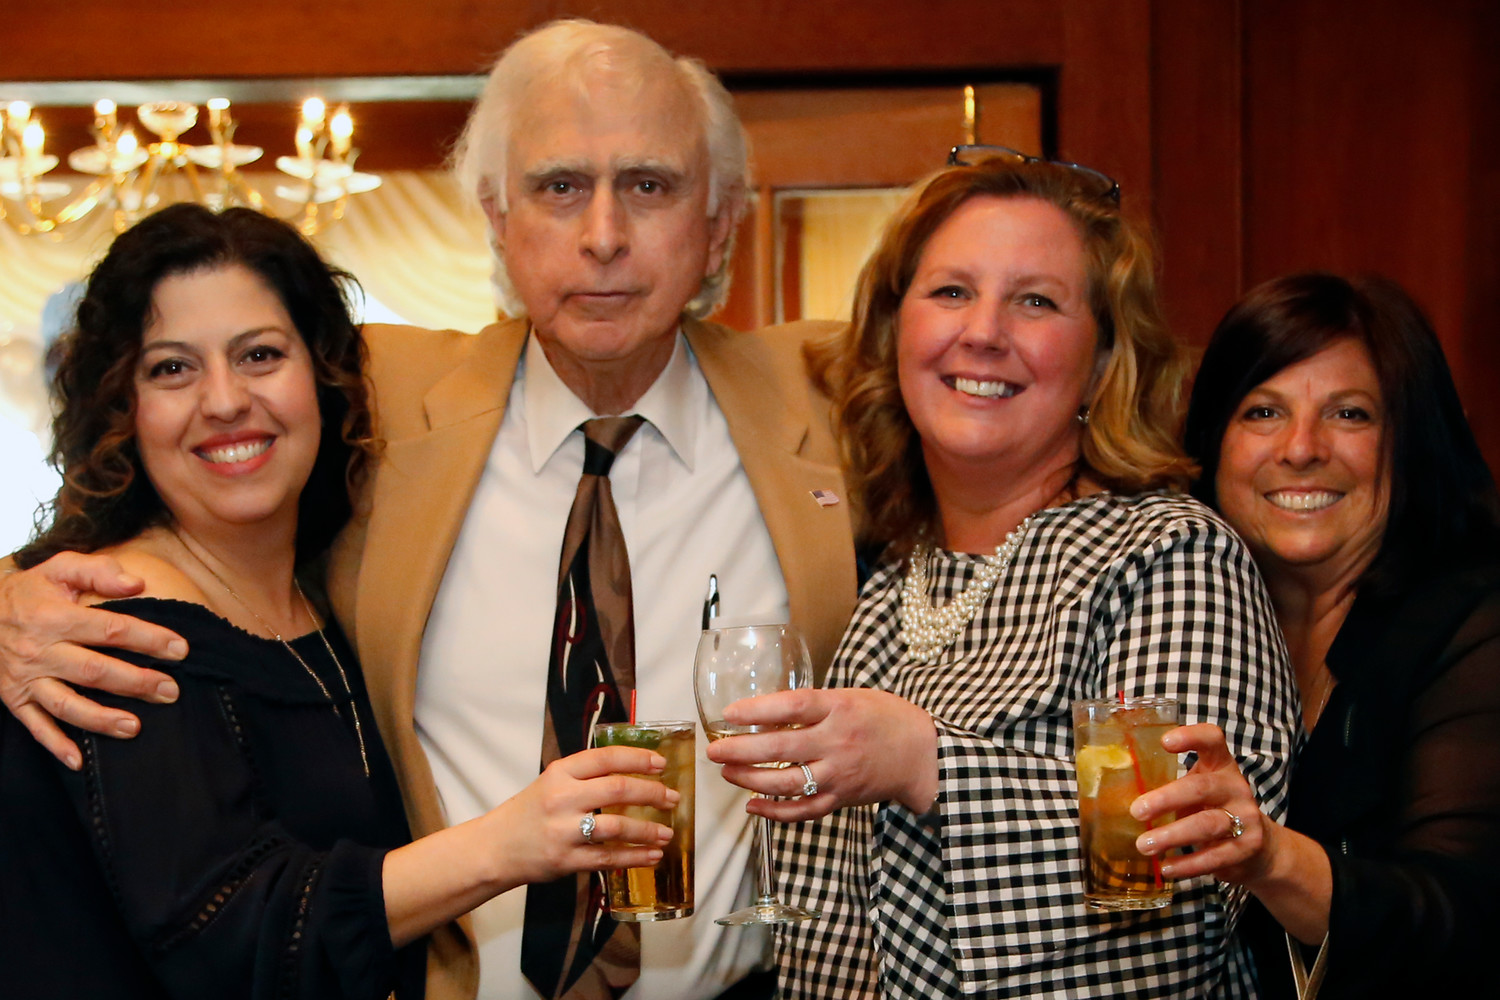 Honoree Don Maresca with teachers Marla Pedi, Christina Sartori and Andrea Marzano.